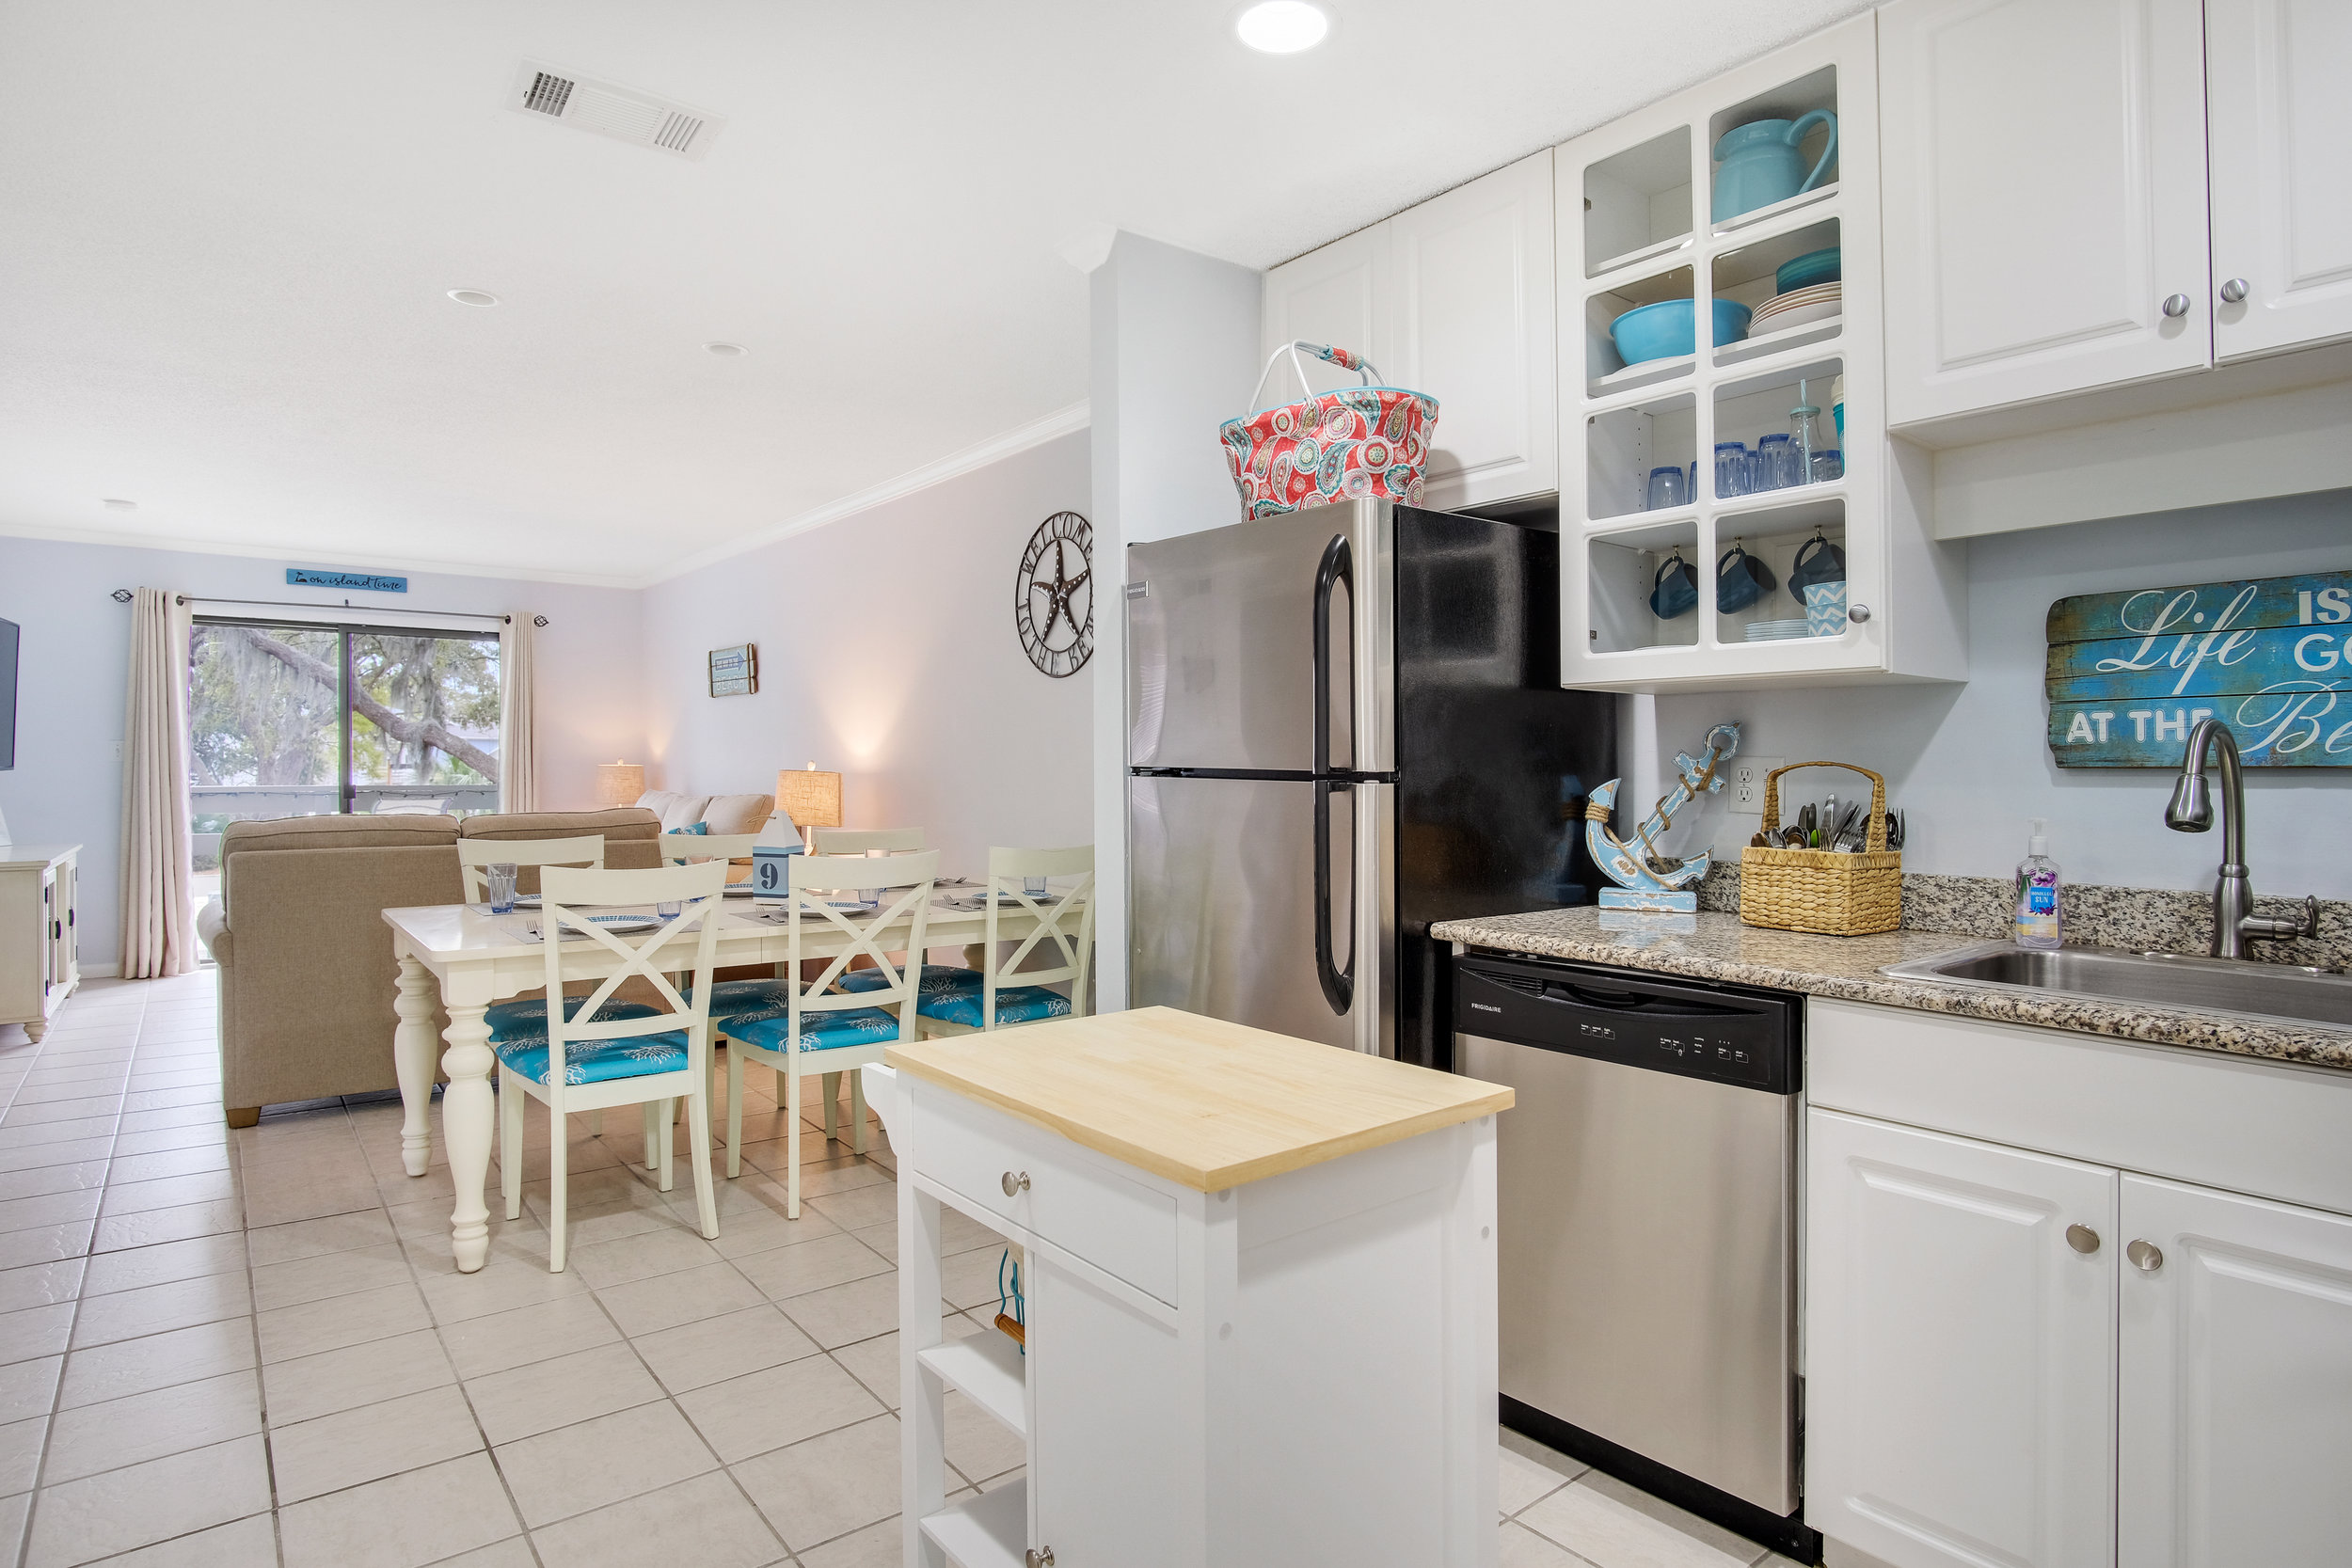 Fiddlers Cove 12 - LOCATION: Folly FieldSQUARE FOOTAGE: 757BEDROOMS: 2SLEEPS: 6BATHROOMS: 2PETS: NoHIGHLIGHTS: Recently renovated, easy walk to Folly Field beach, pools and other great amenities.TO BOOK directly with the owner visit their site.